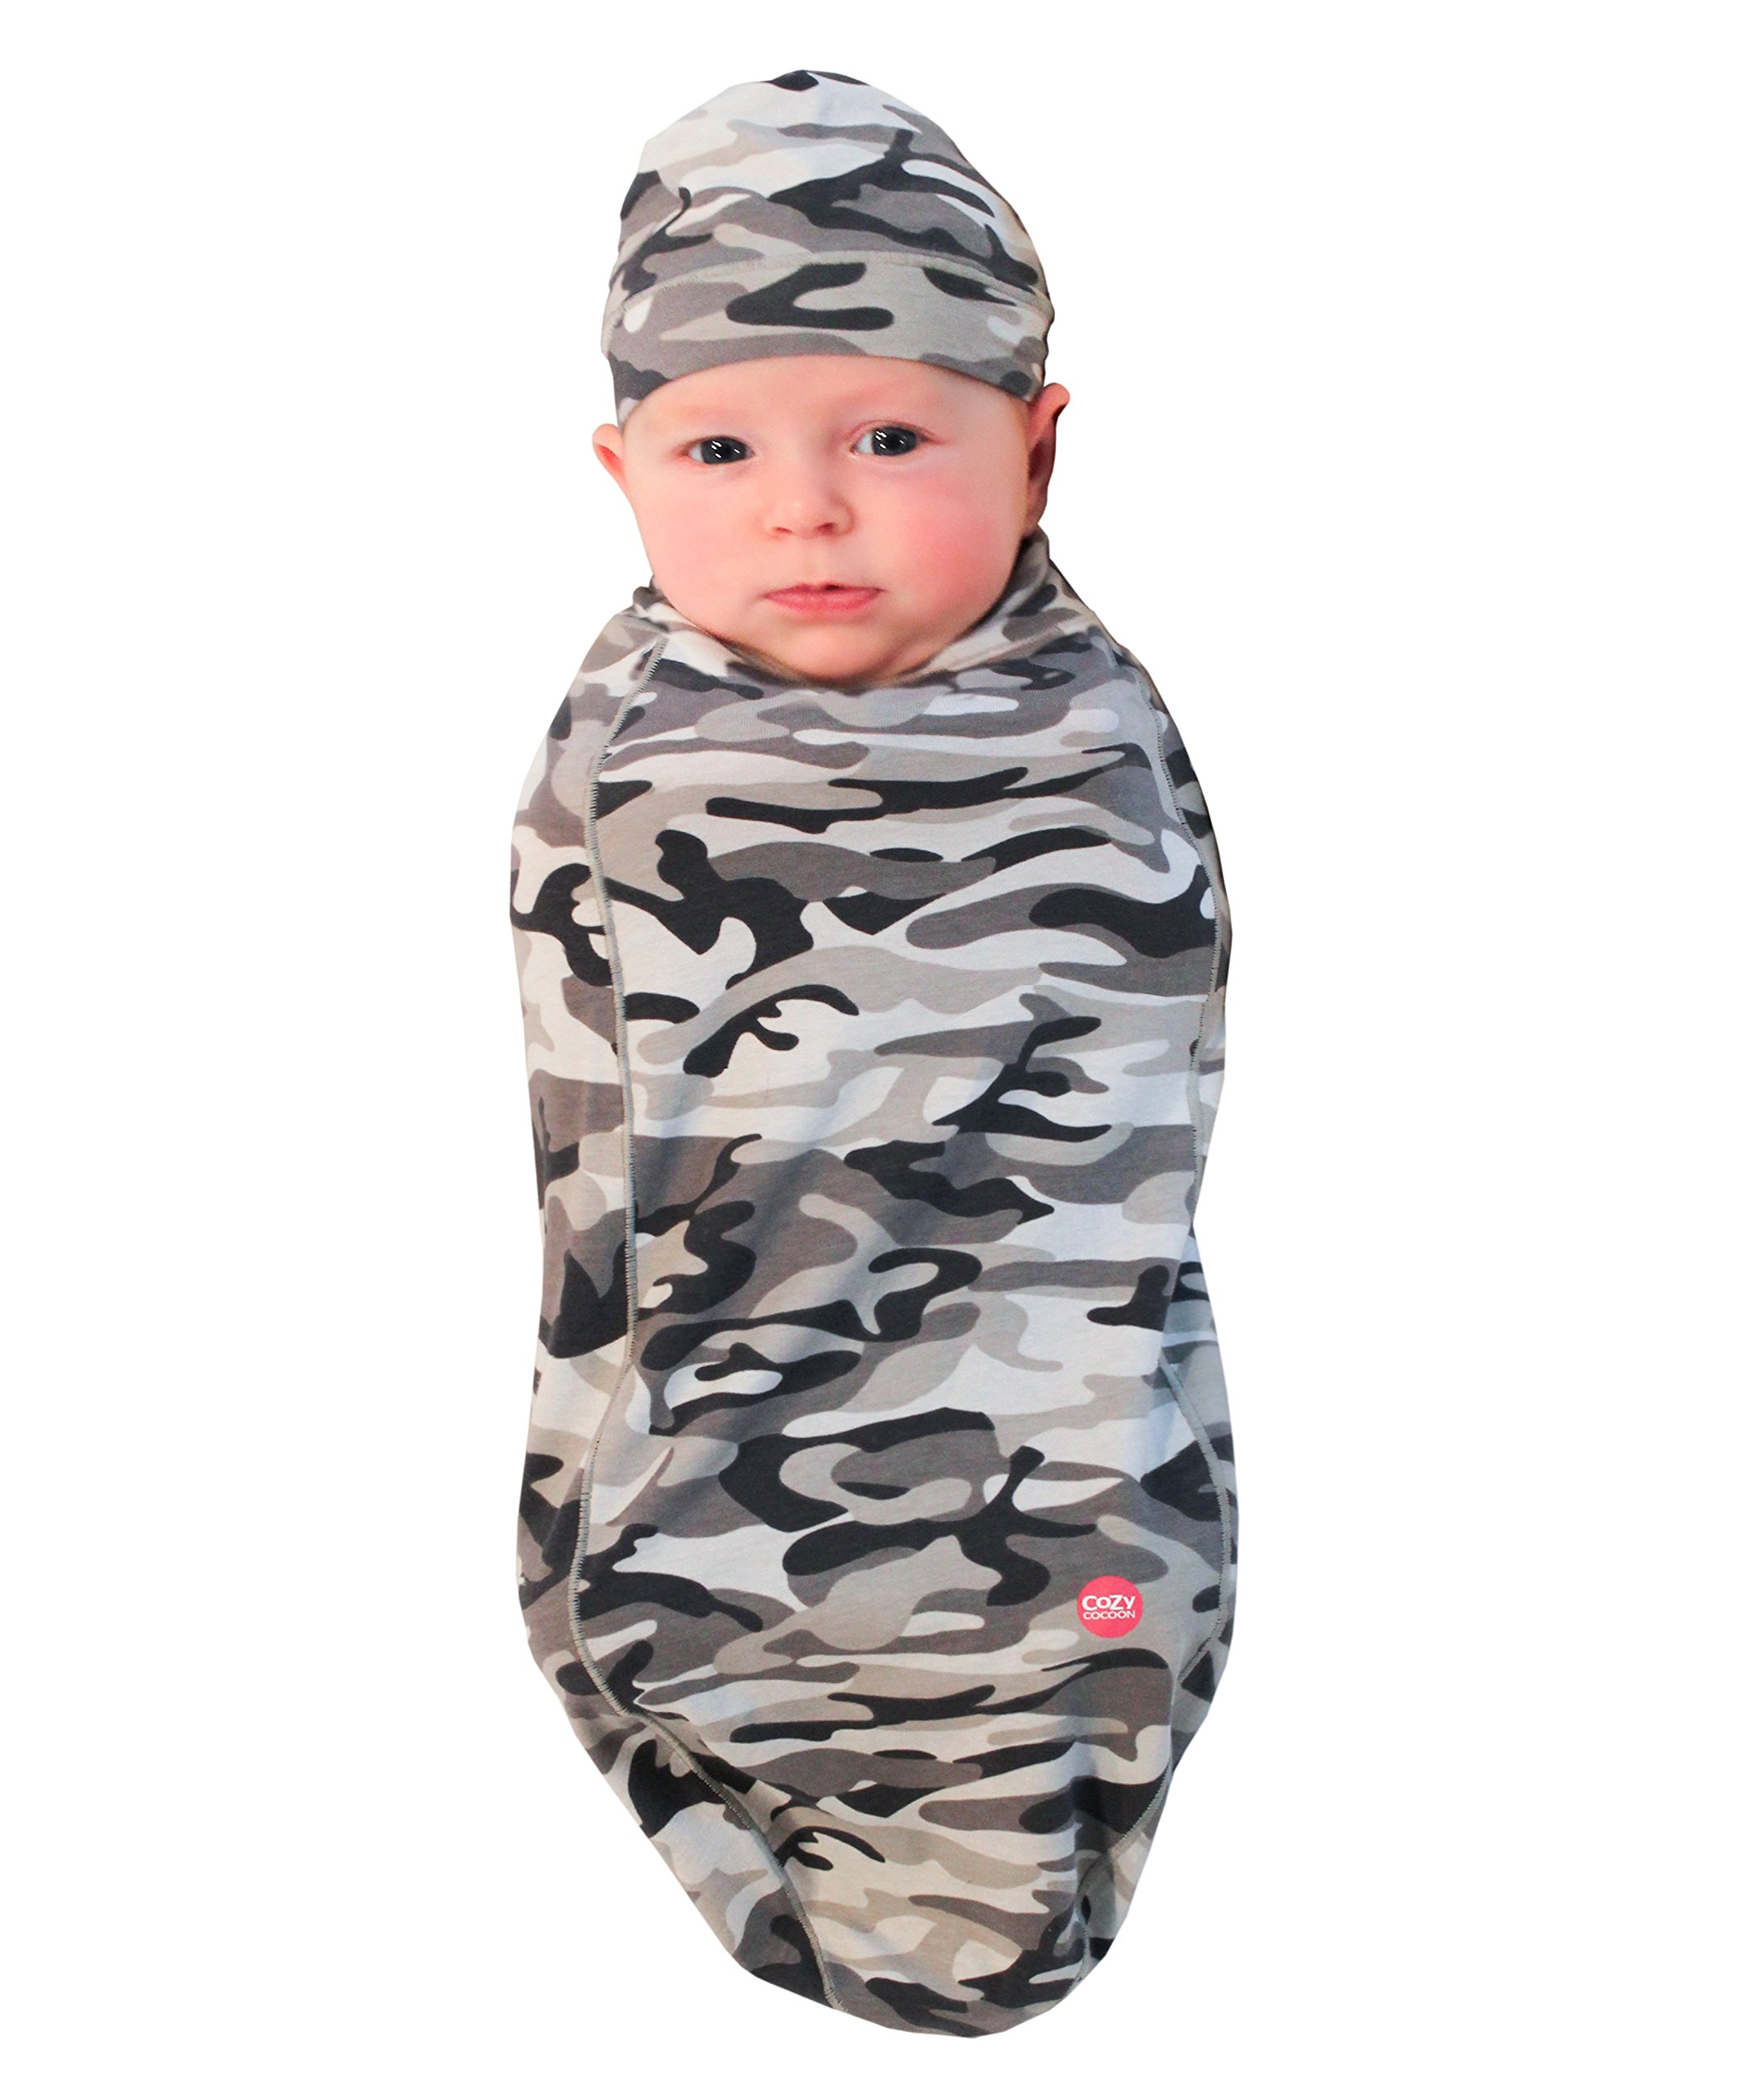 Cozy Cocoon Baby Cocoon Swaddle and Matching Hat, Camouflage, 3-6 Months